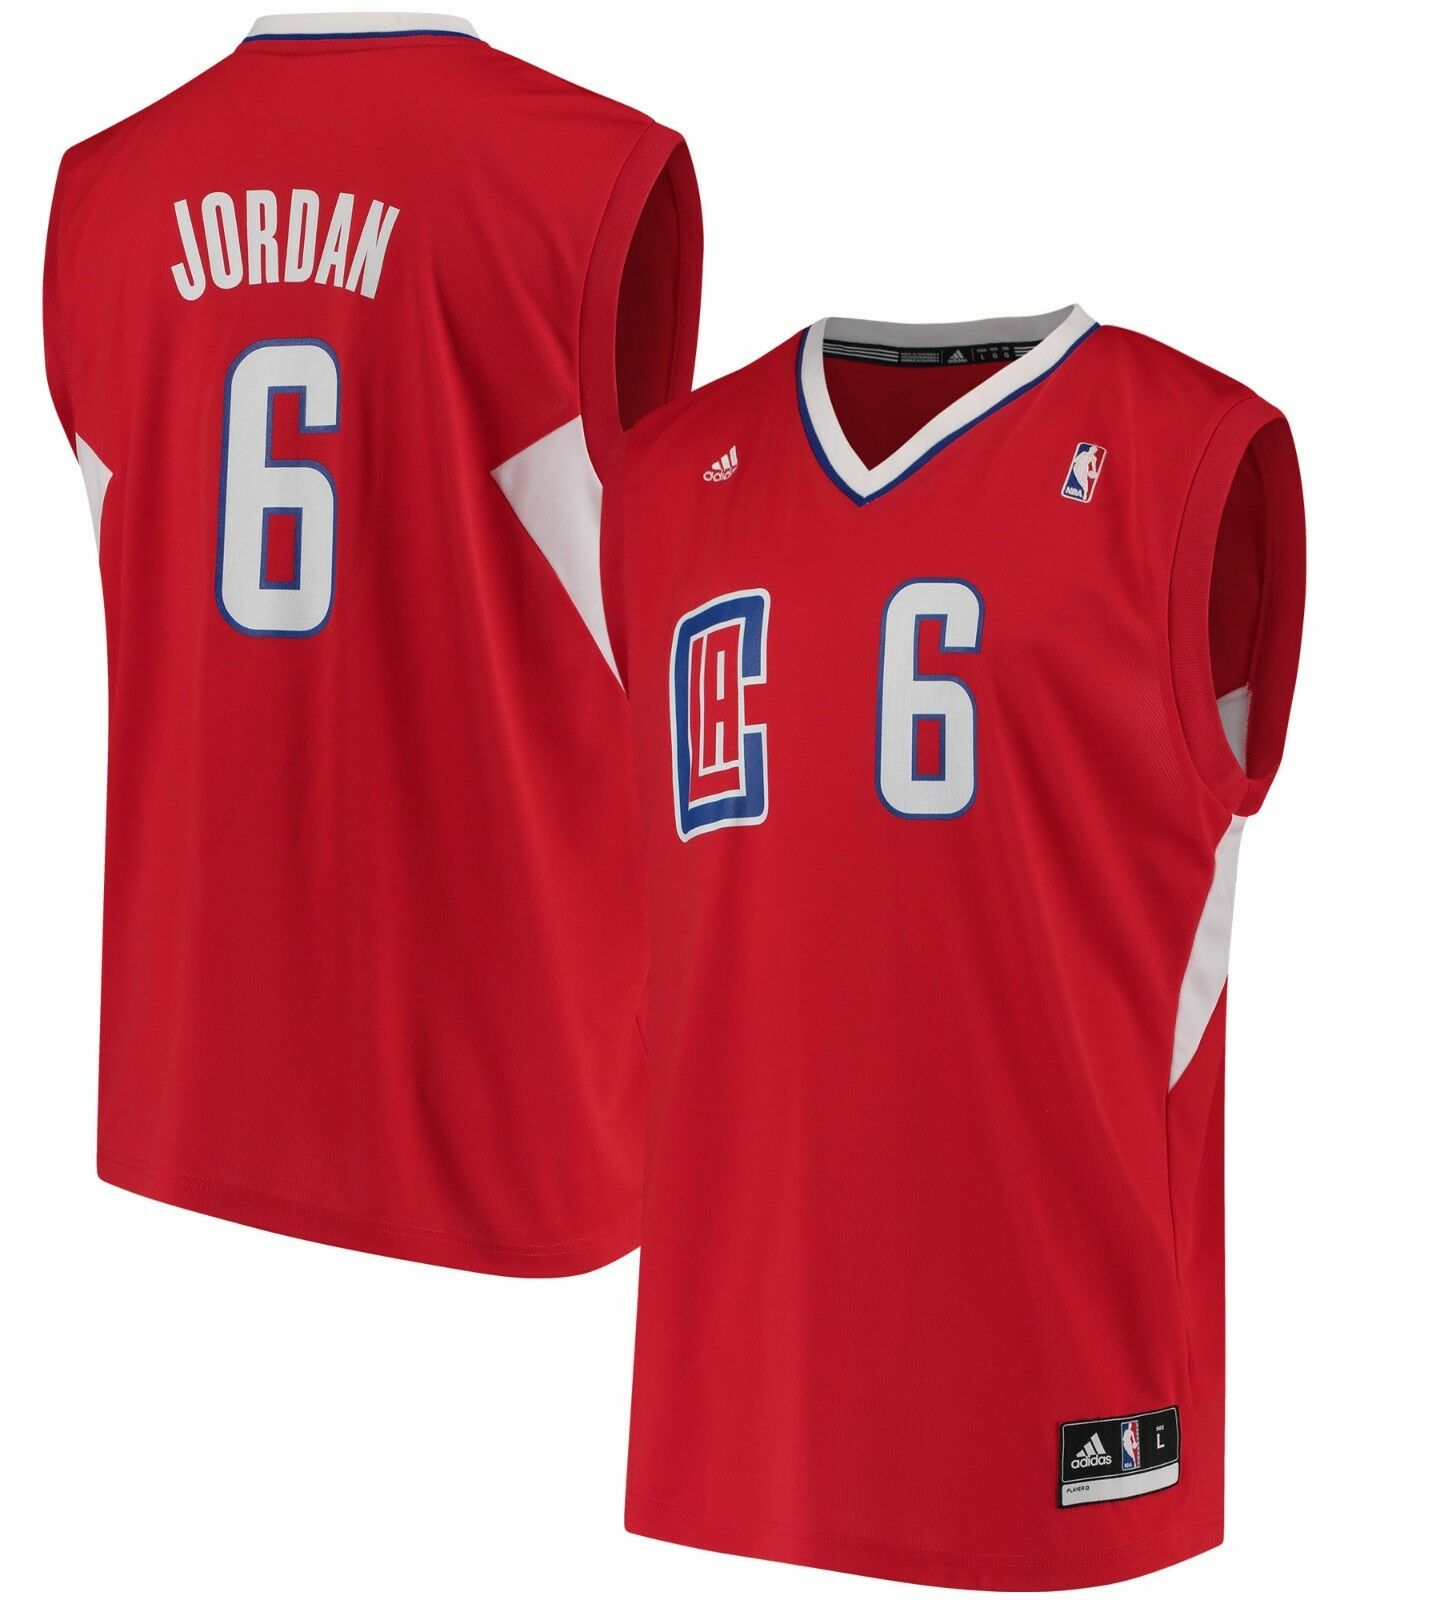 DeAndre Jordan LA Clippers adidas NBA  Replica Jersey - RED % GENUINE